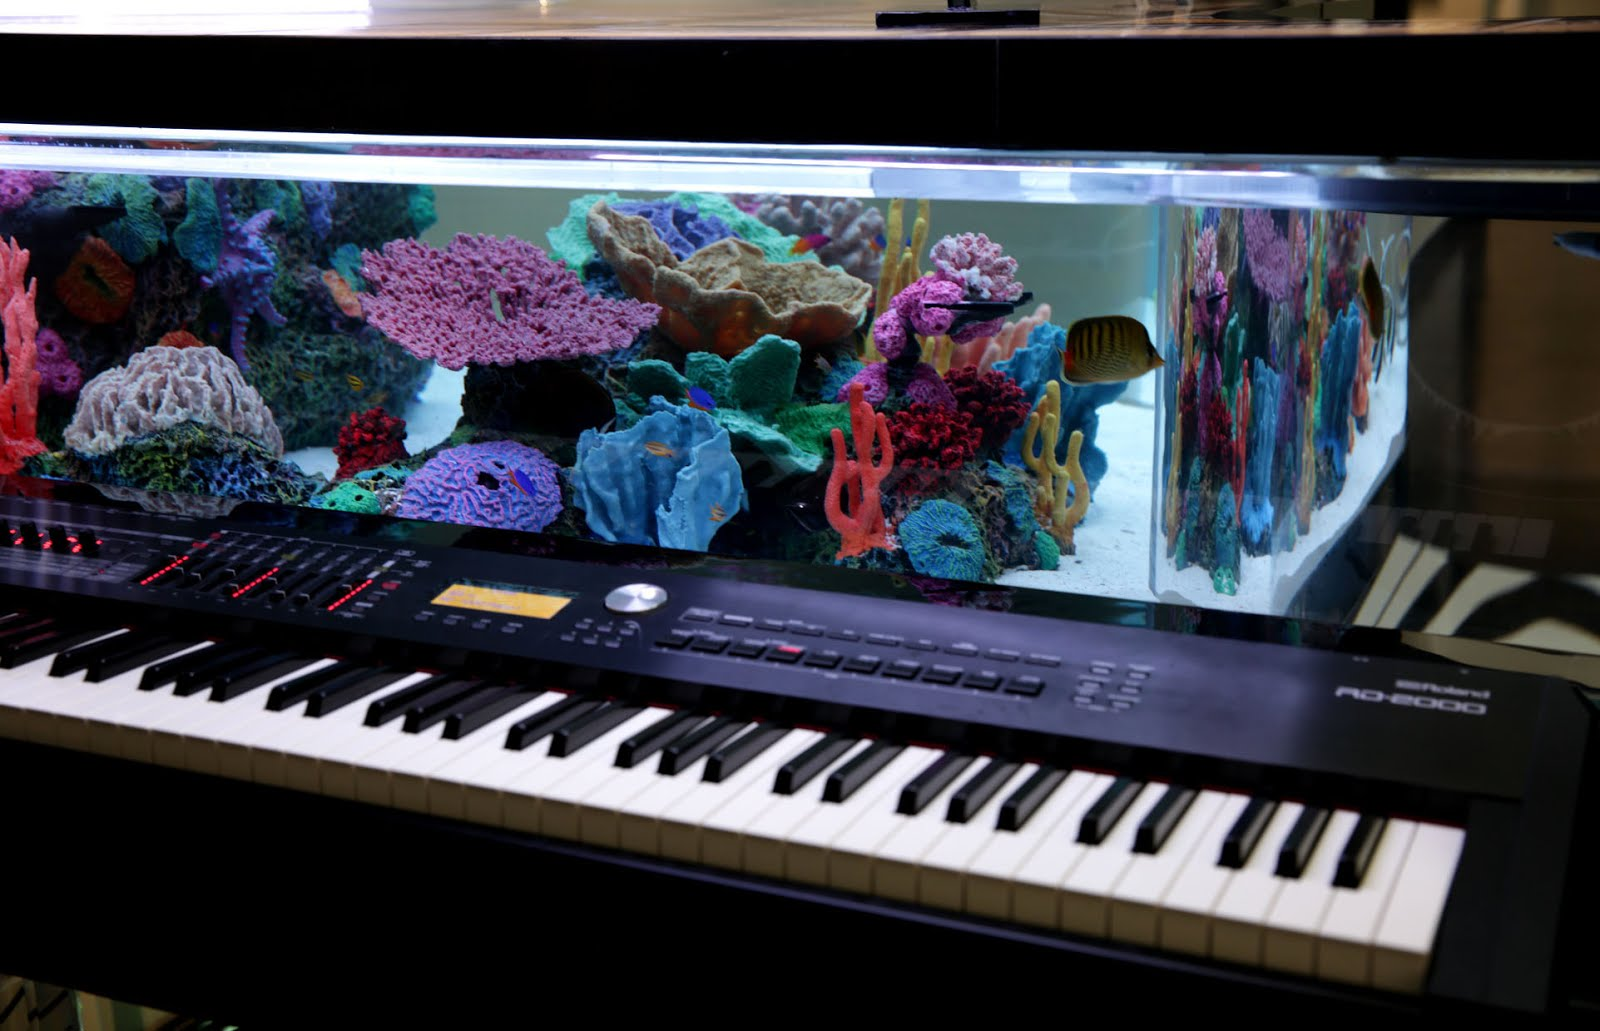 Roland RD-2000 Stage Piano Featured on Animal Planet Program 'Tanked